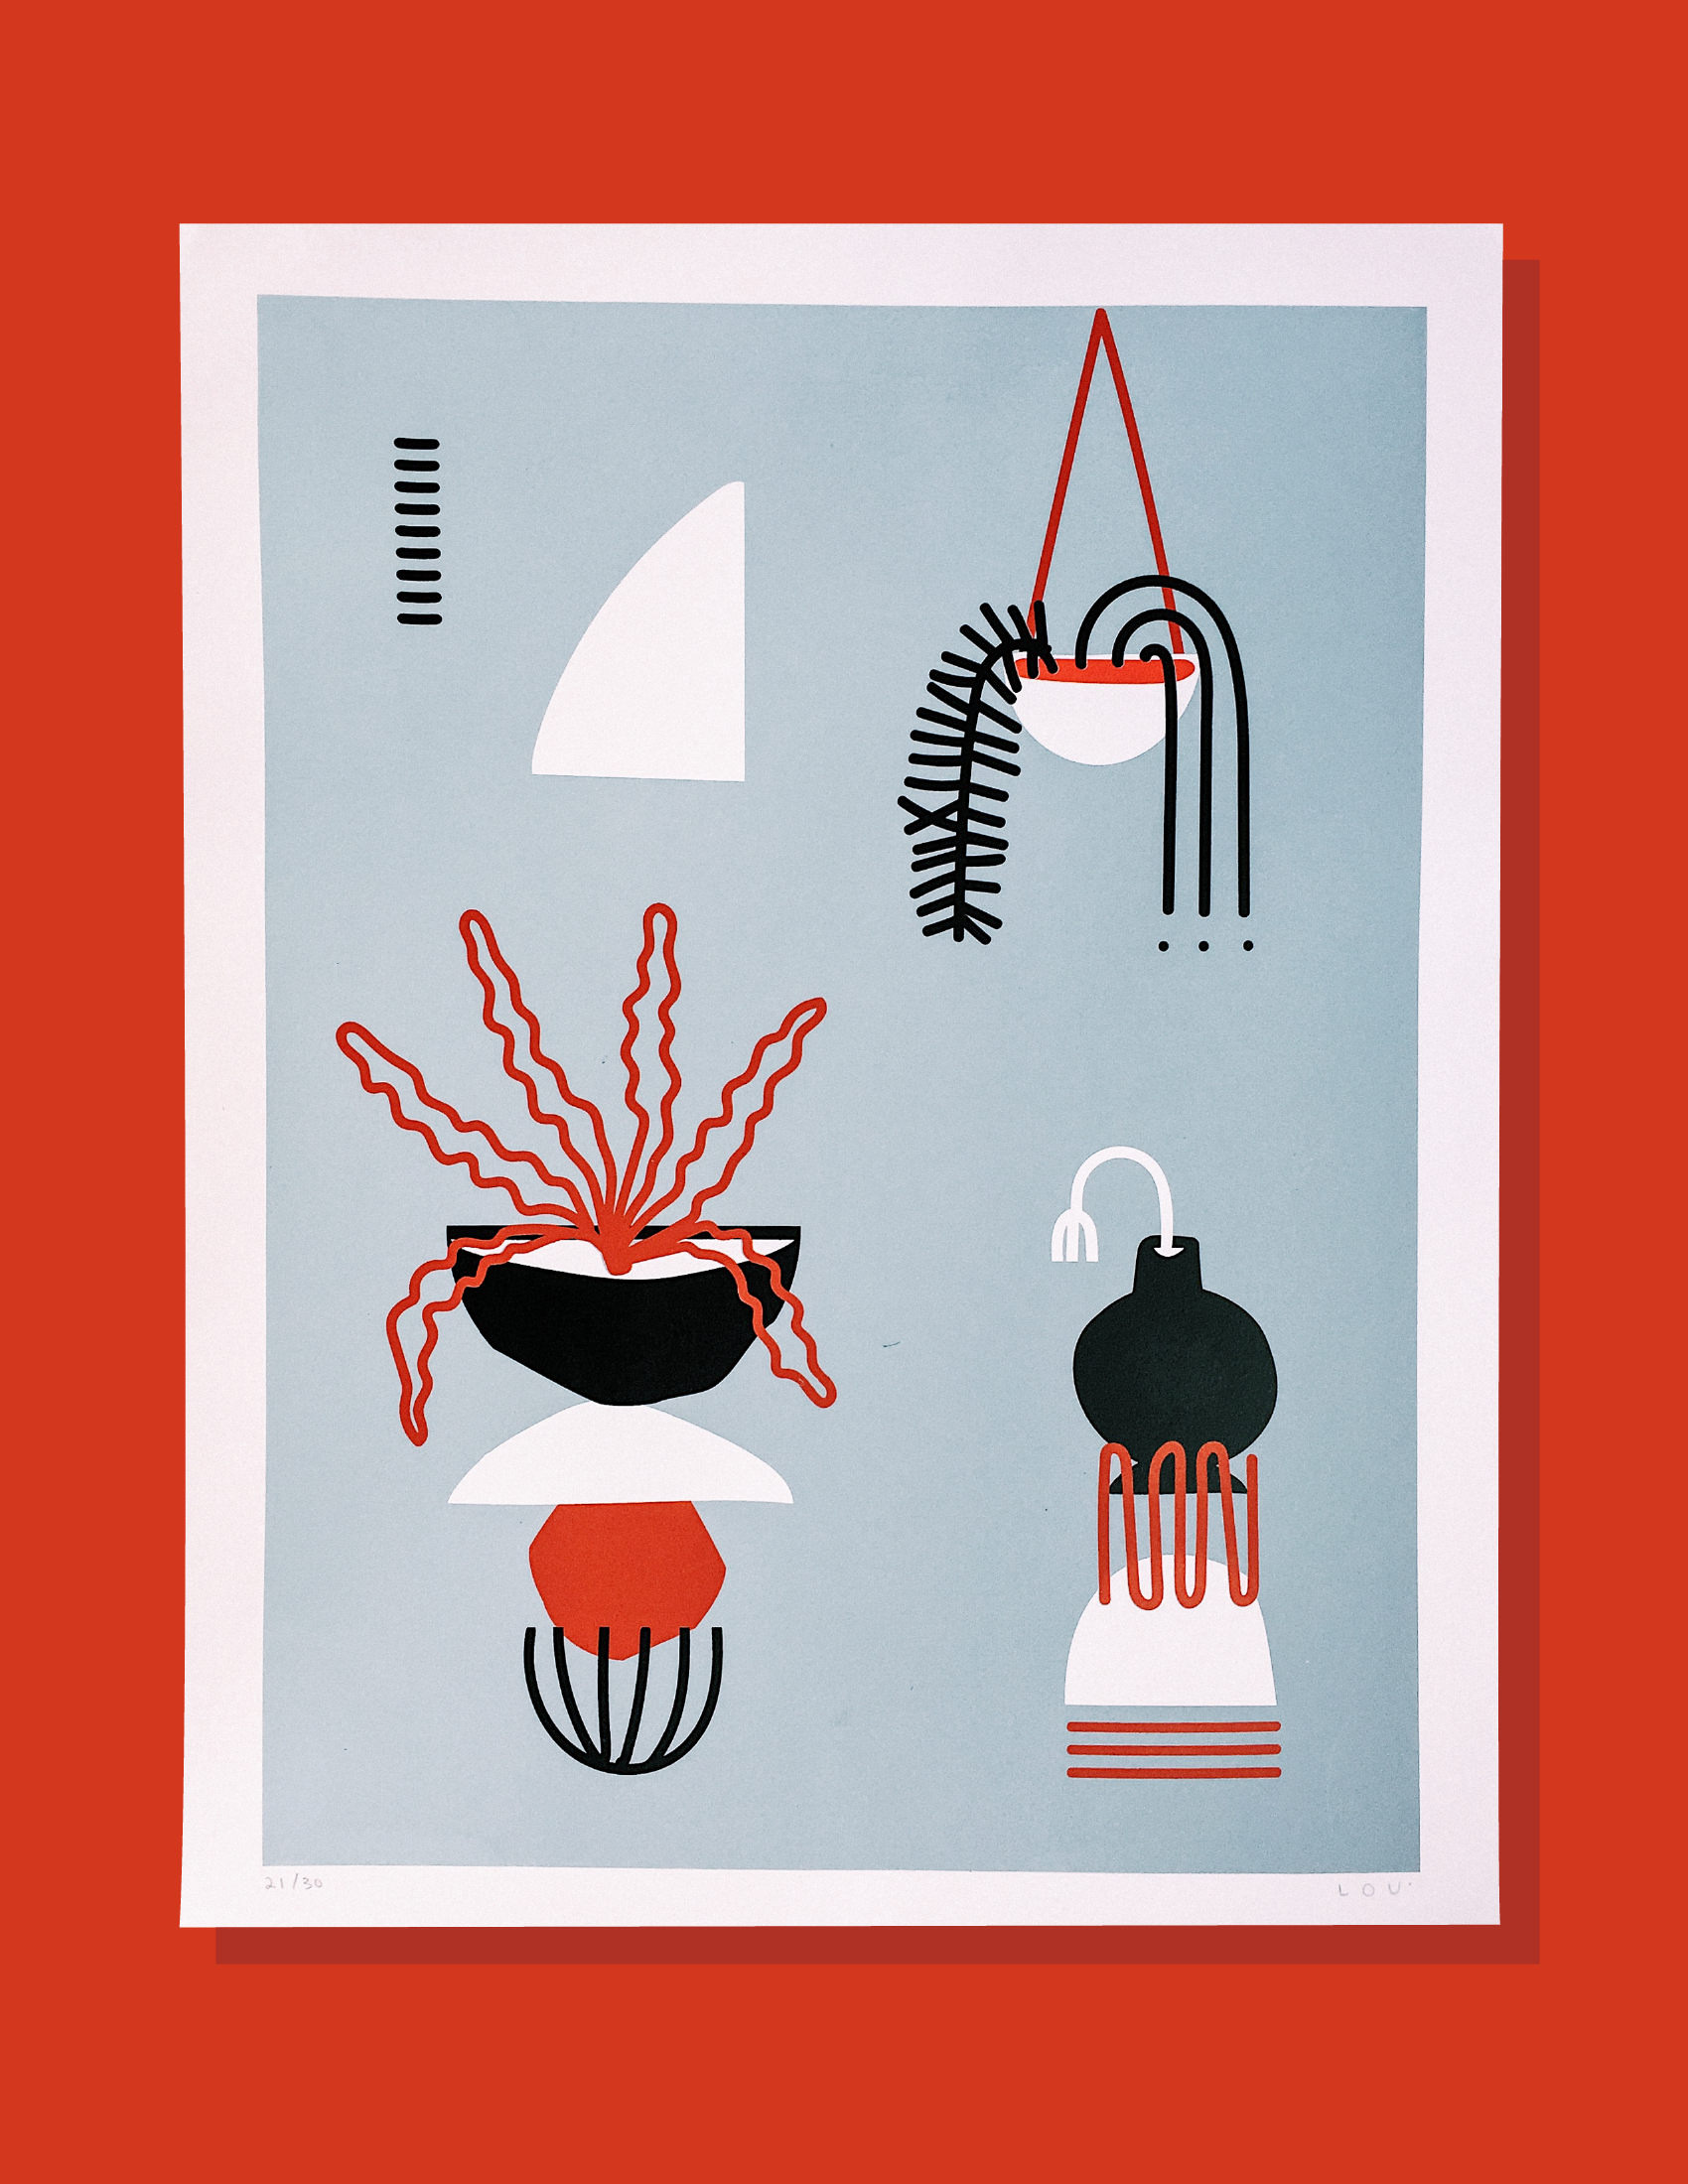 Partnered with Ello to give away 3 'Domingo' Prints - Visit me on Ello to find out more.